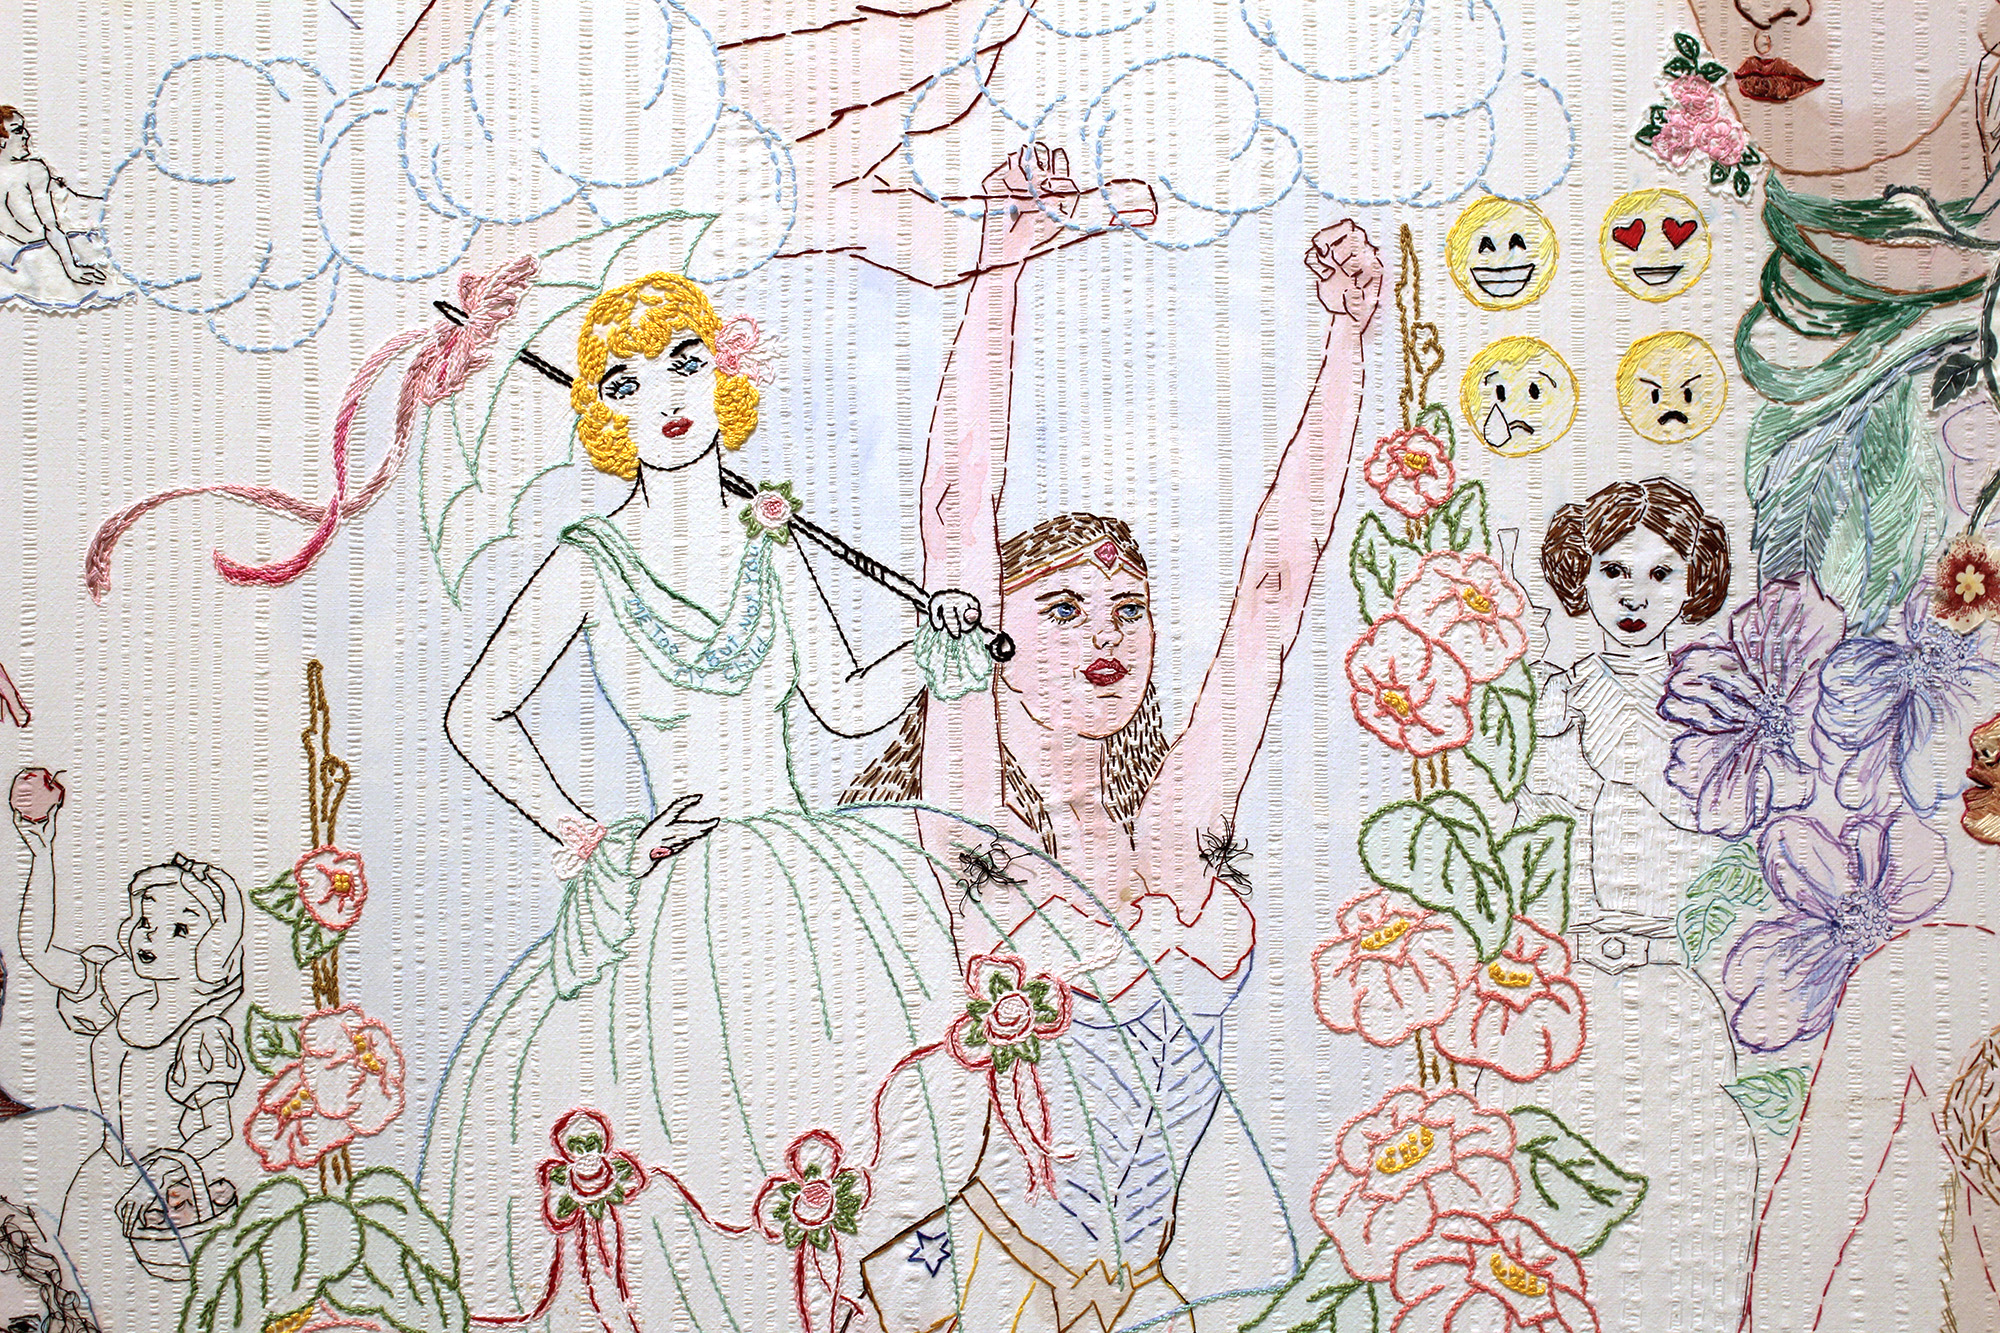 """POW"" (2018), hand-stitched embroidery, applique, and paint on vintage bed linen [detail] 84 x 72 inches"